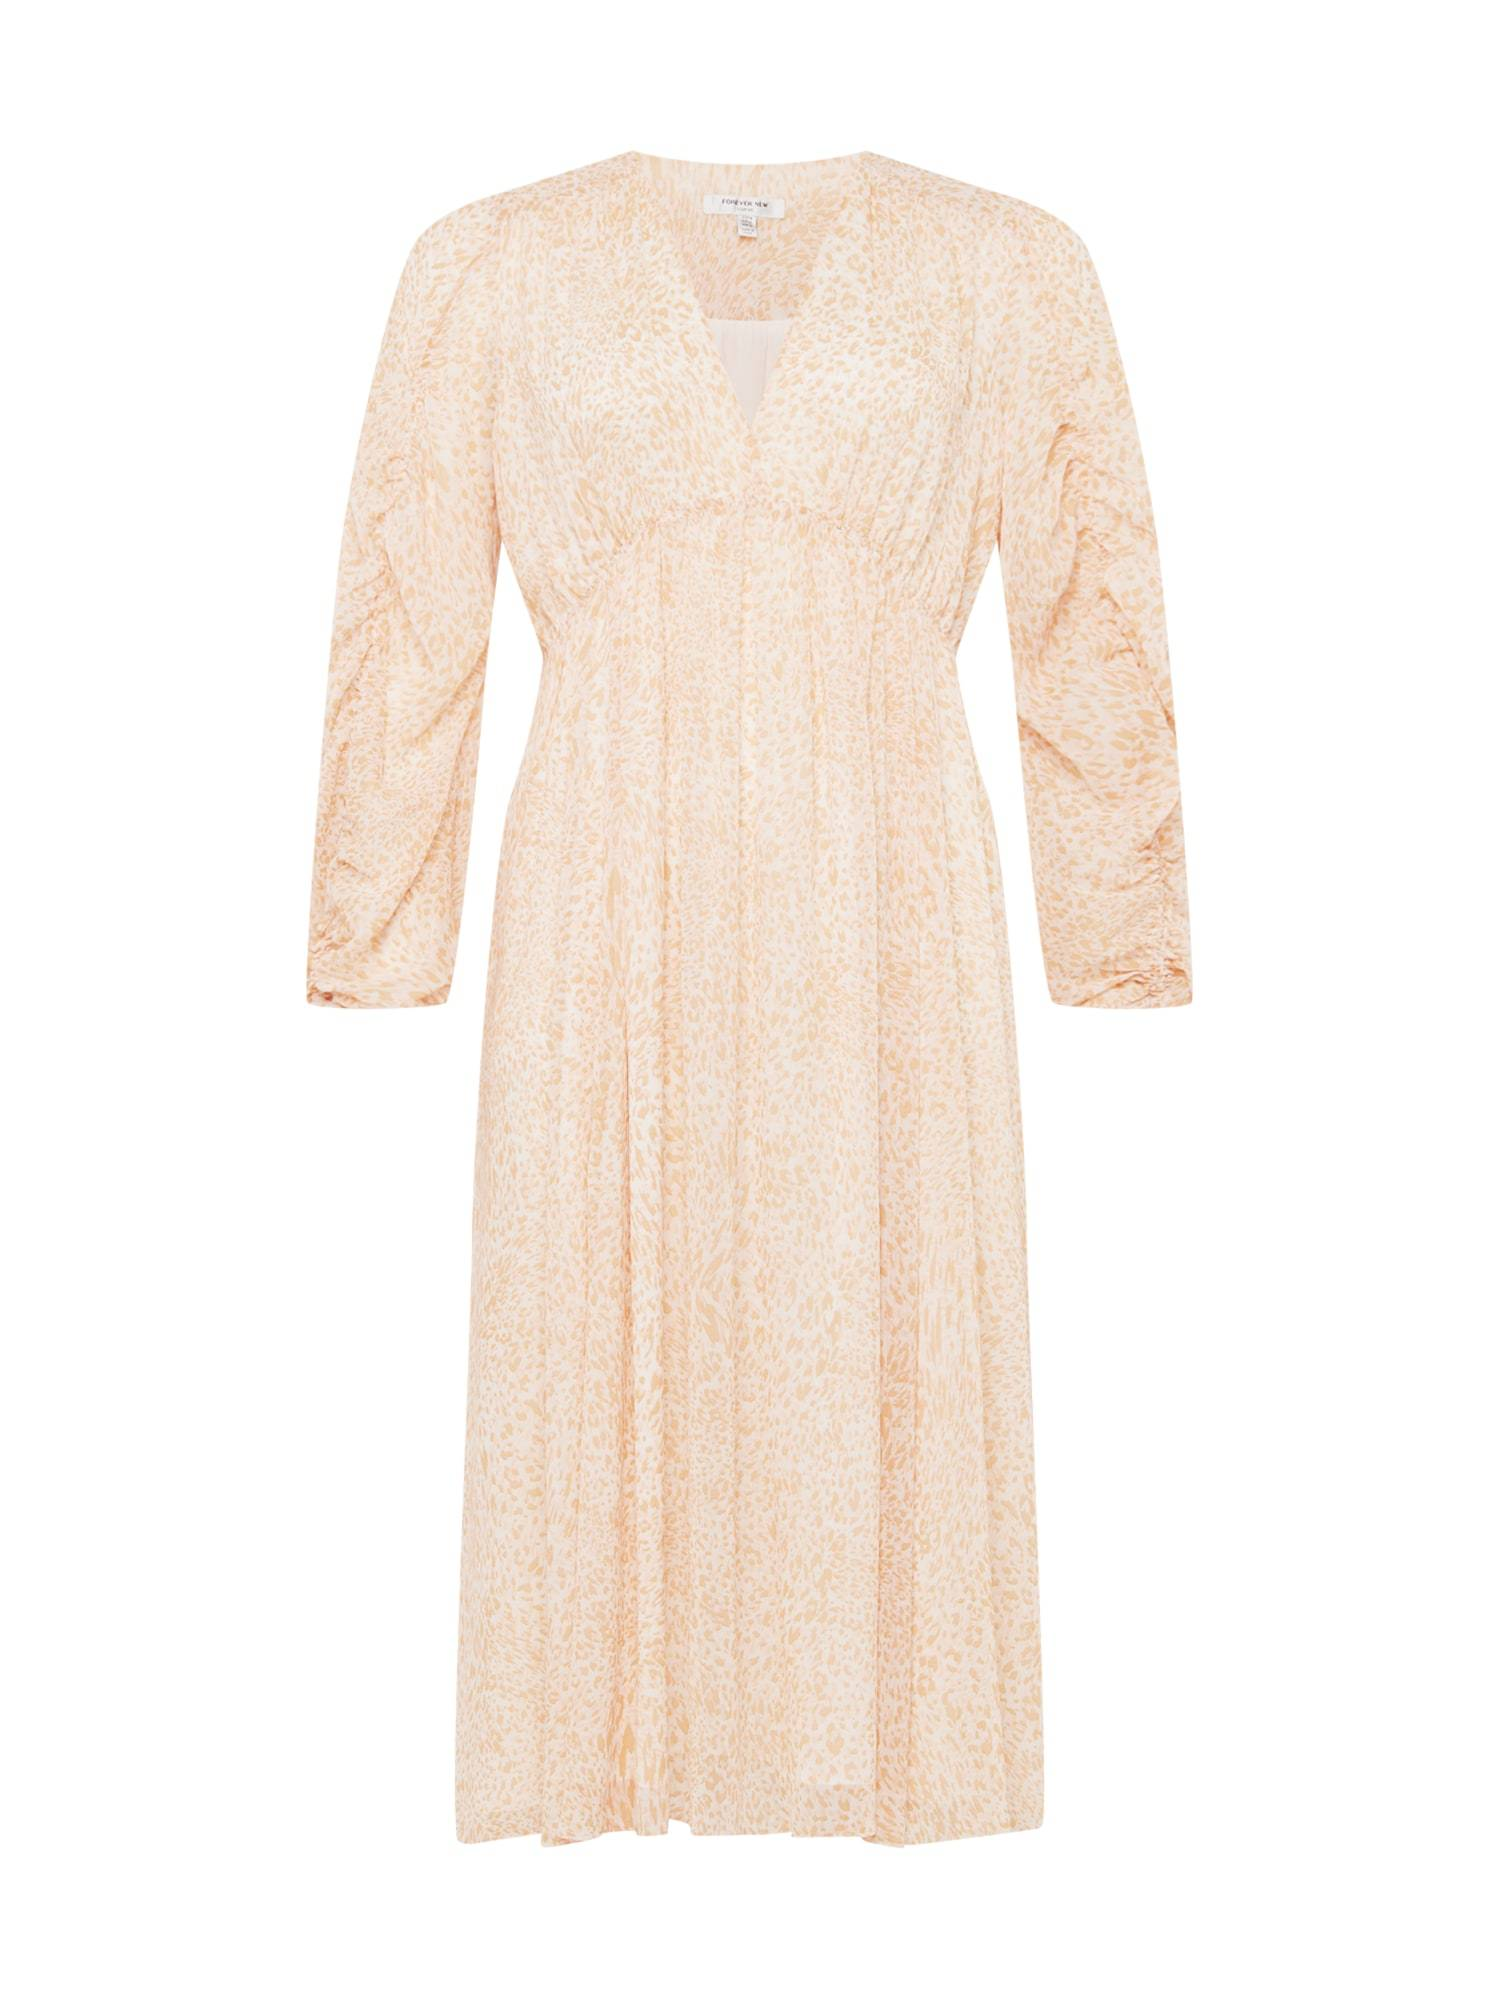 Forever New Curve Robe  - Beige - Taille: 20 - female